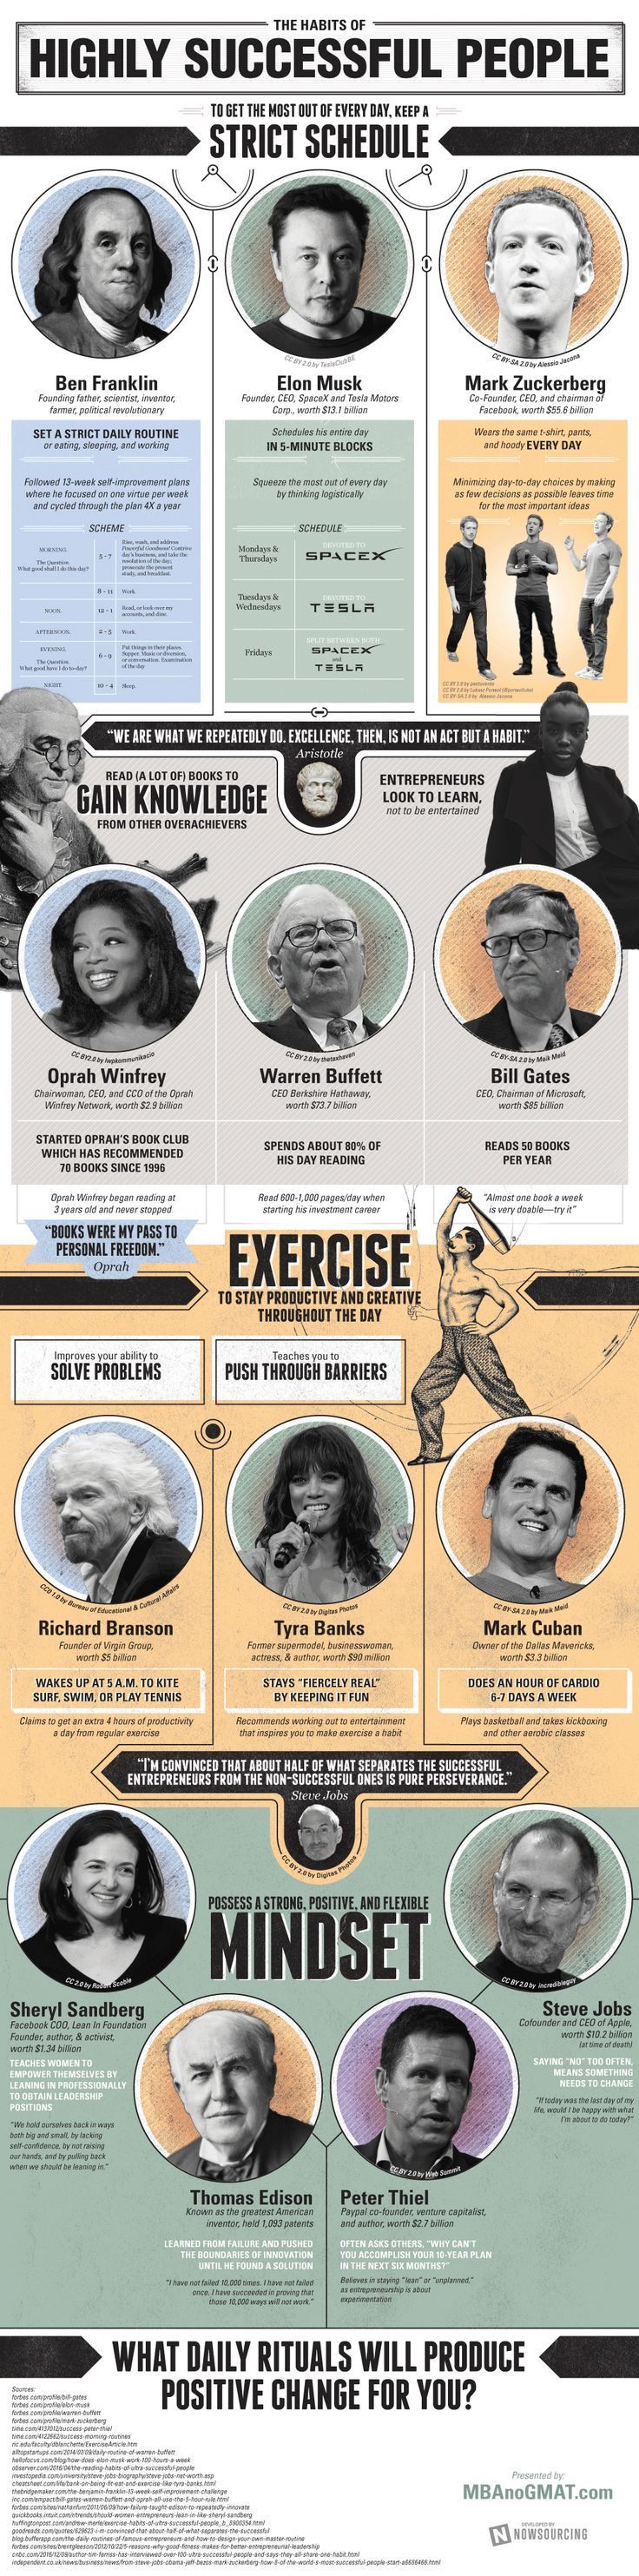 The Habits of Highly Successful Entrepreneurs: How do You Compare? [Infographic] - http://topseosoft.com/the-habits-of-highly-successful-entrepreneurs-how-do-you-compare-infographic/